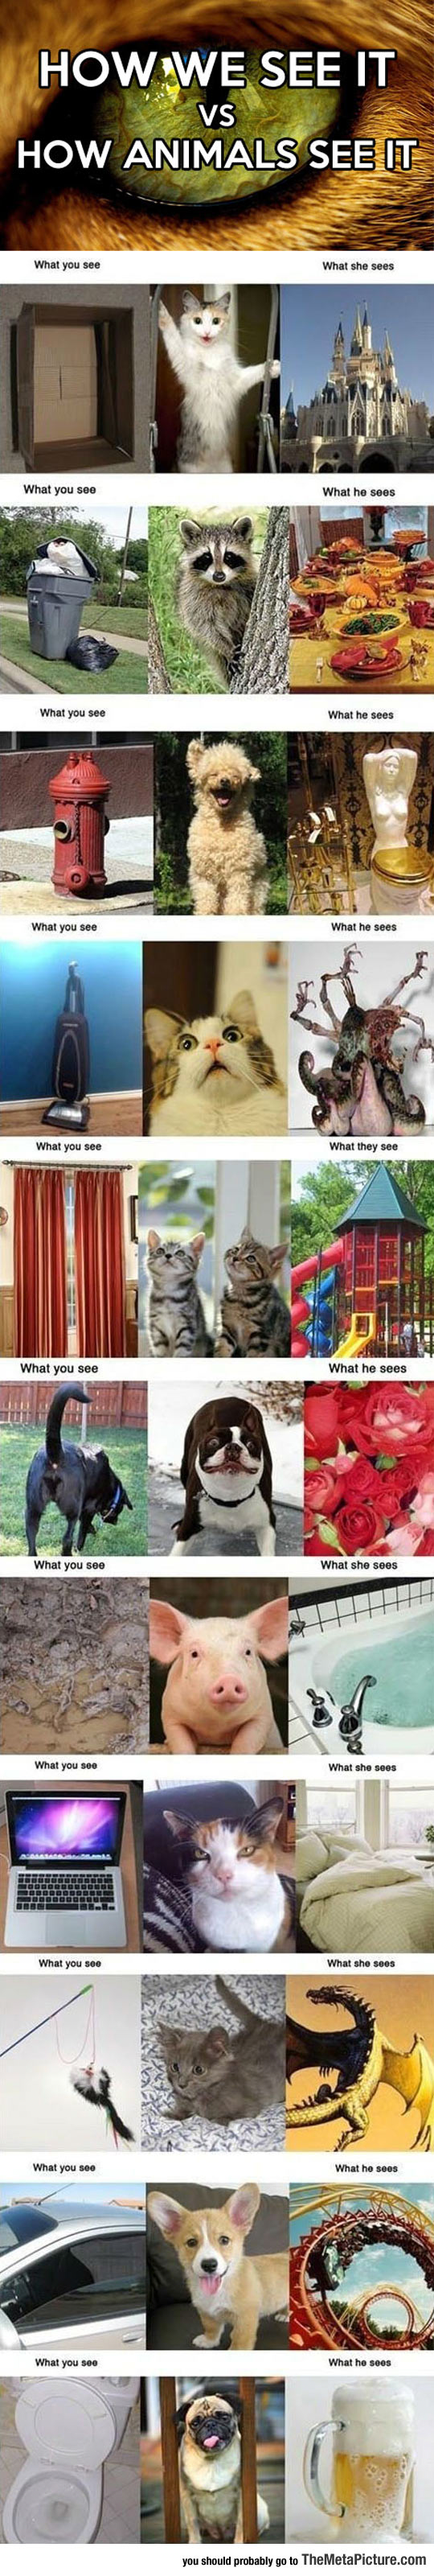 How Humans See It Vs. How Animals See It